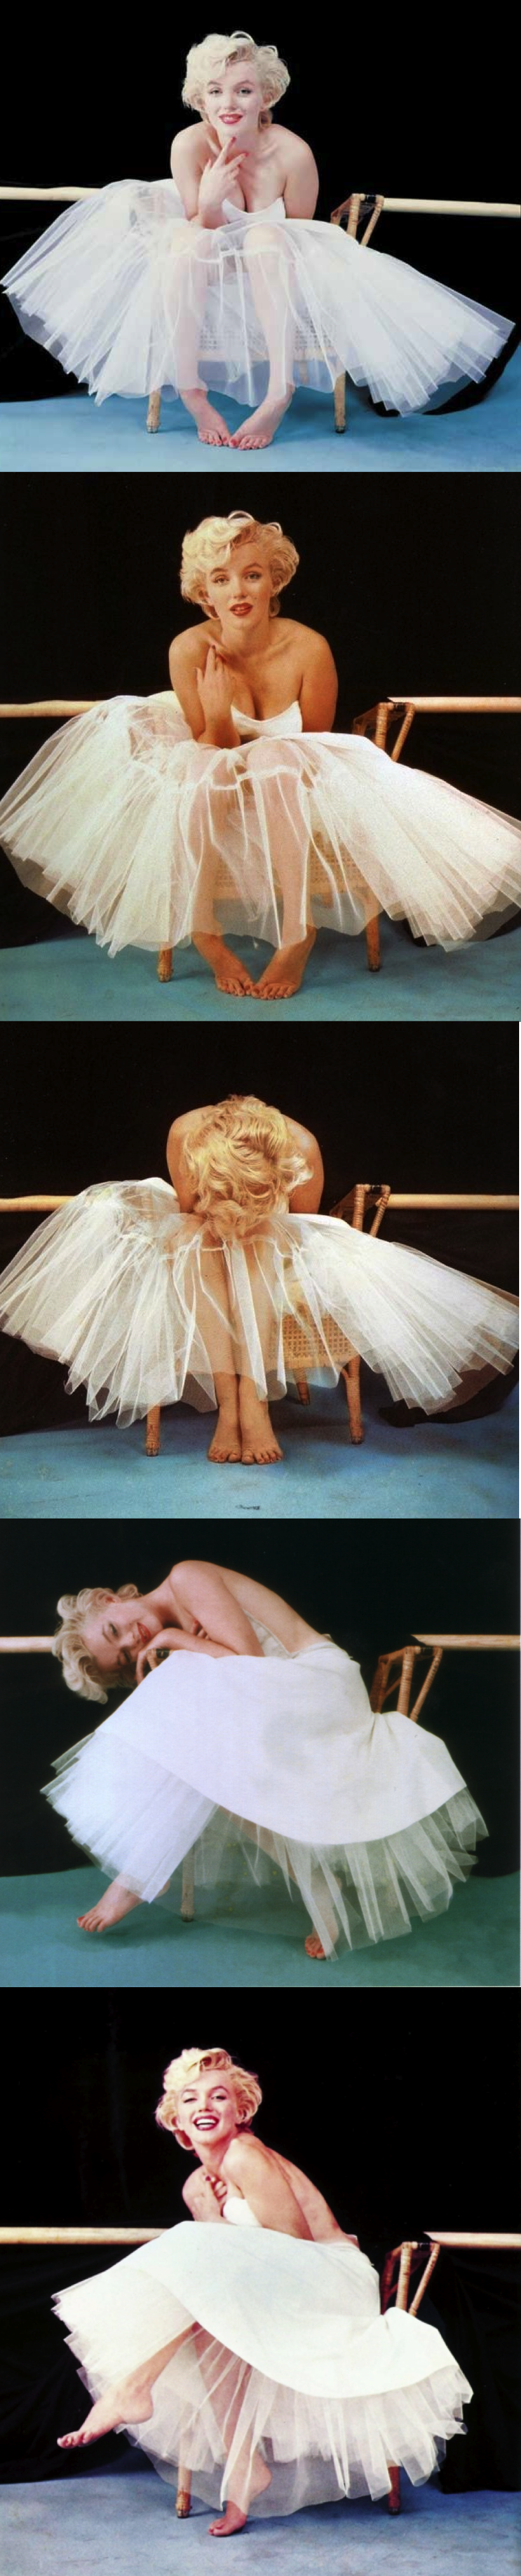 Marilyn Ballerina Sitting Photos By Milton Greene 1954 Marilyn Marilyn Monroe Fashion Marilyn Monroe